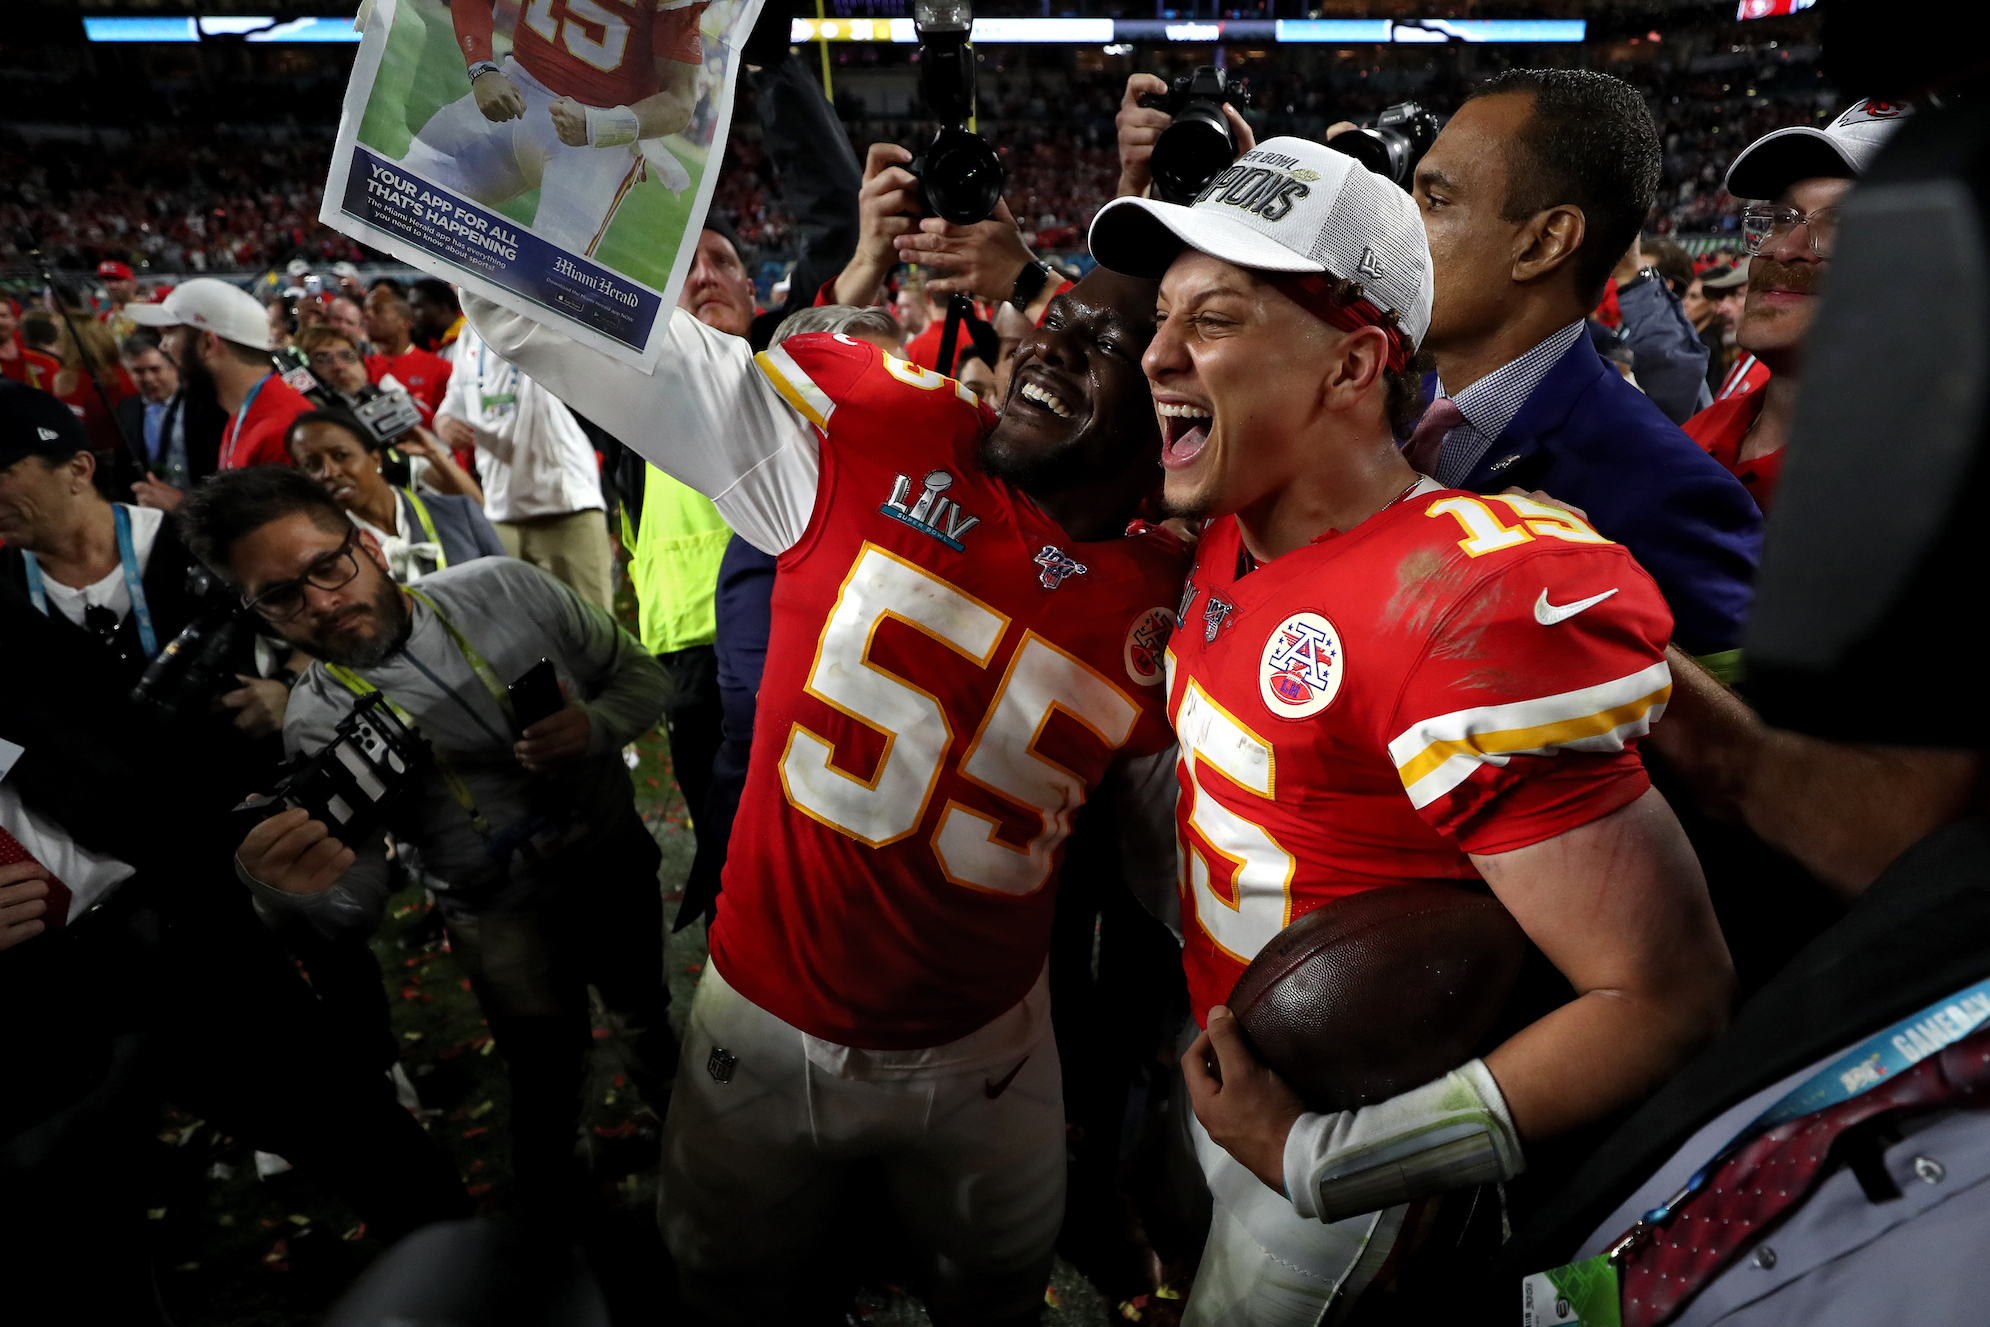 Adam Schefter might've been the first reporter to announce Patrick Mahomes' contract, but he was actually beaten by a liquor store employee.